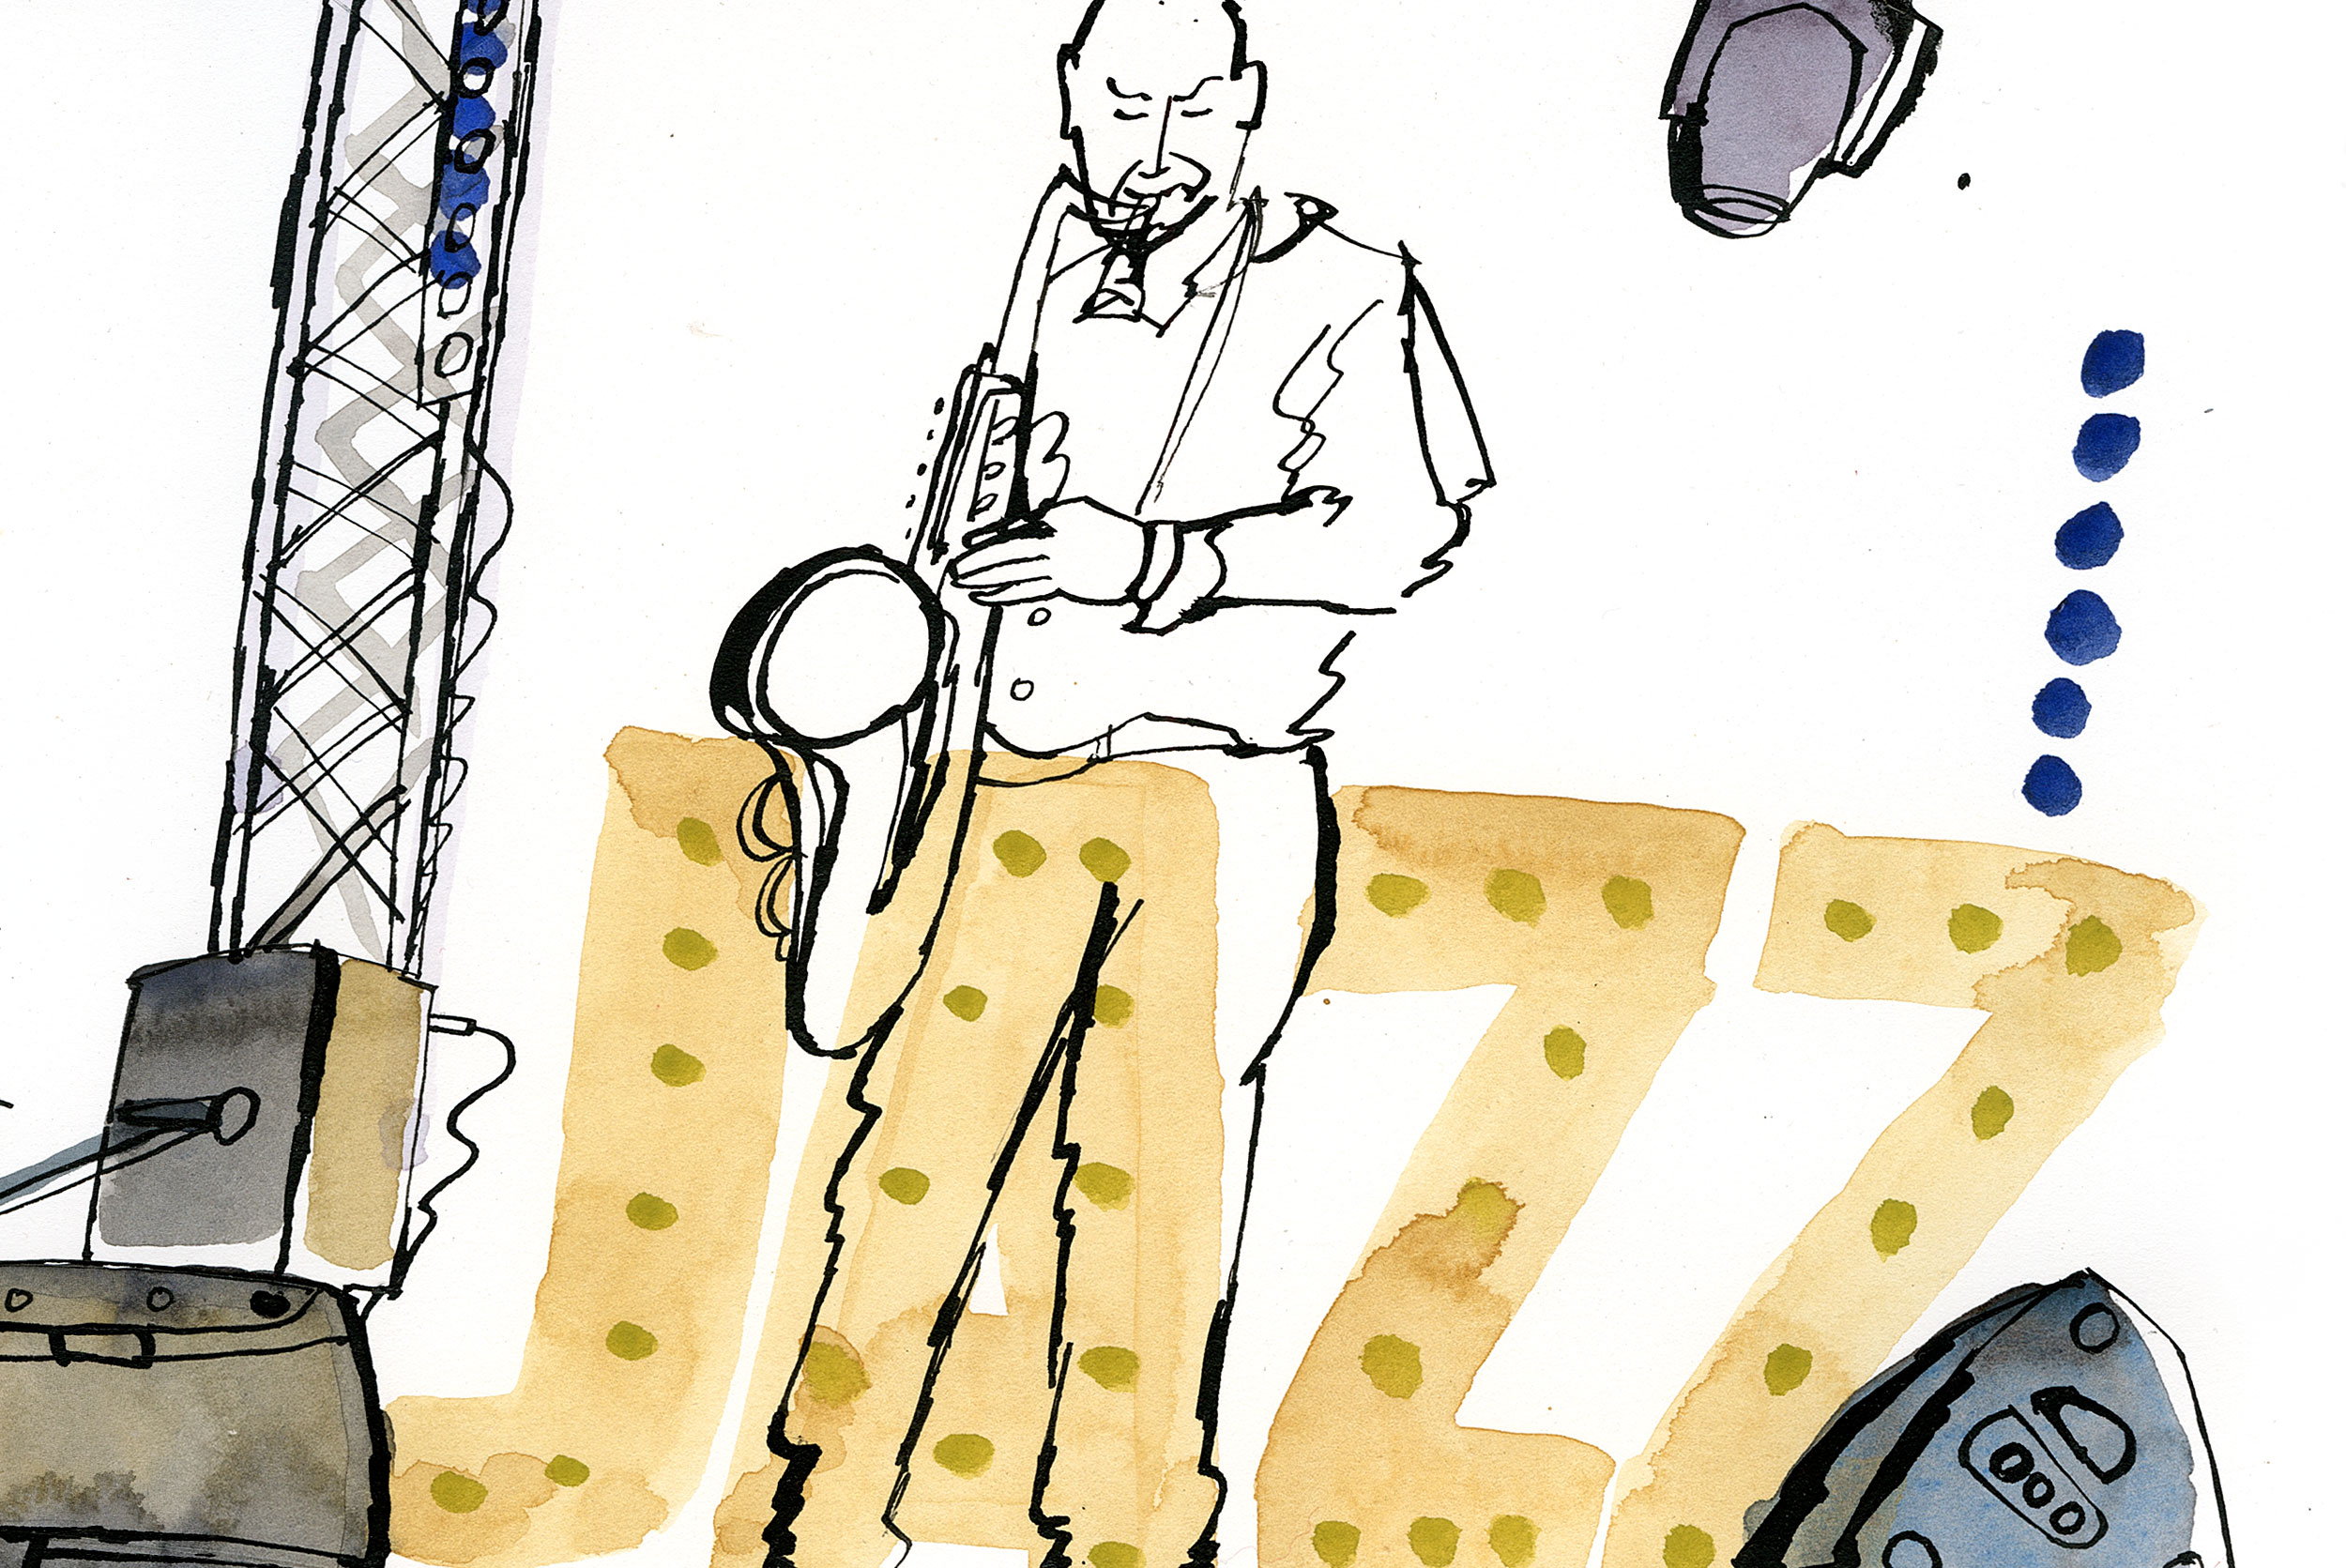 Ealing Jazz Festival by James Oses, image 3